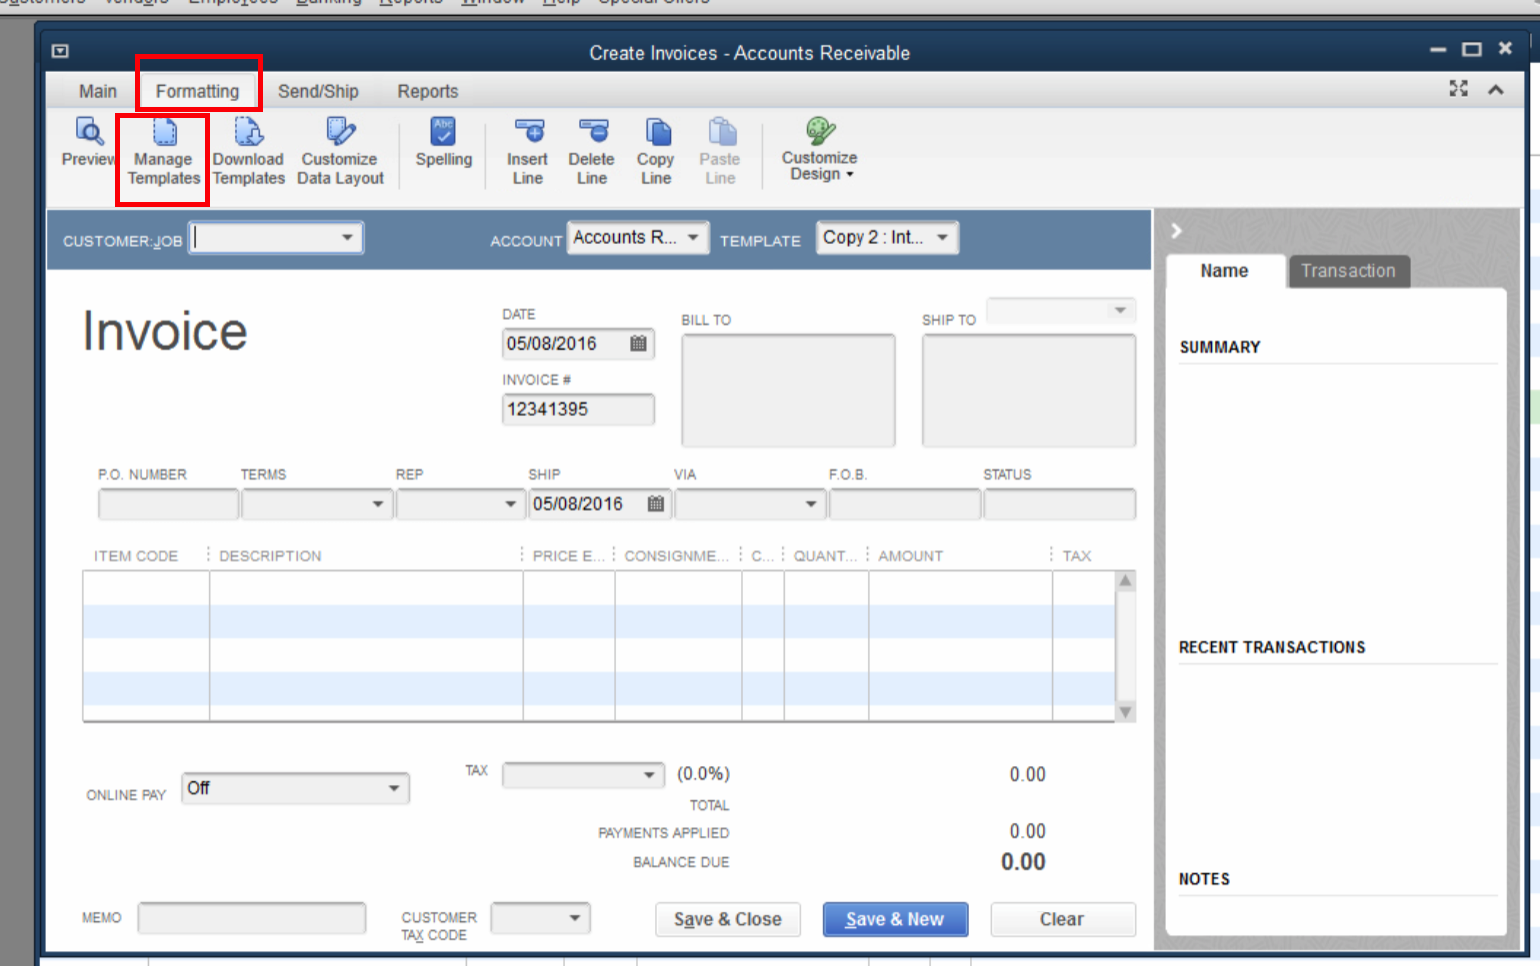 QuickBooks Lot Tracking 6 - Formatting - Manage Template